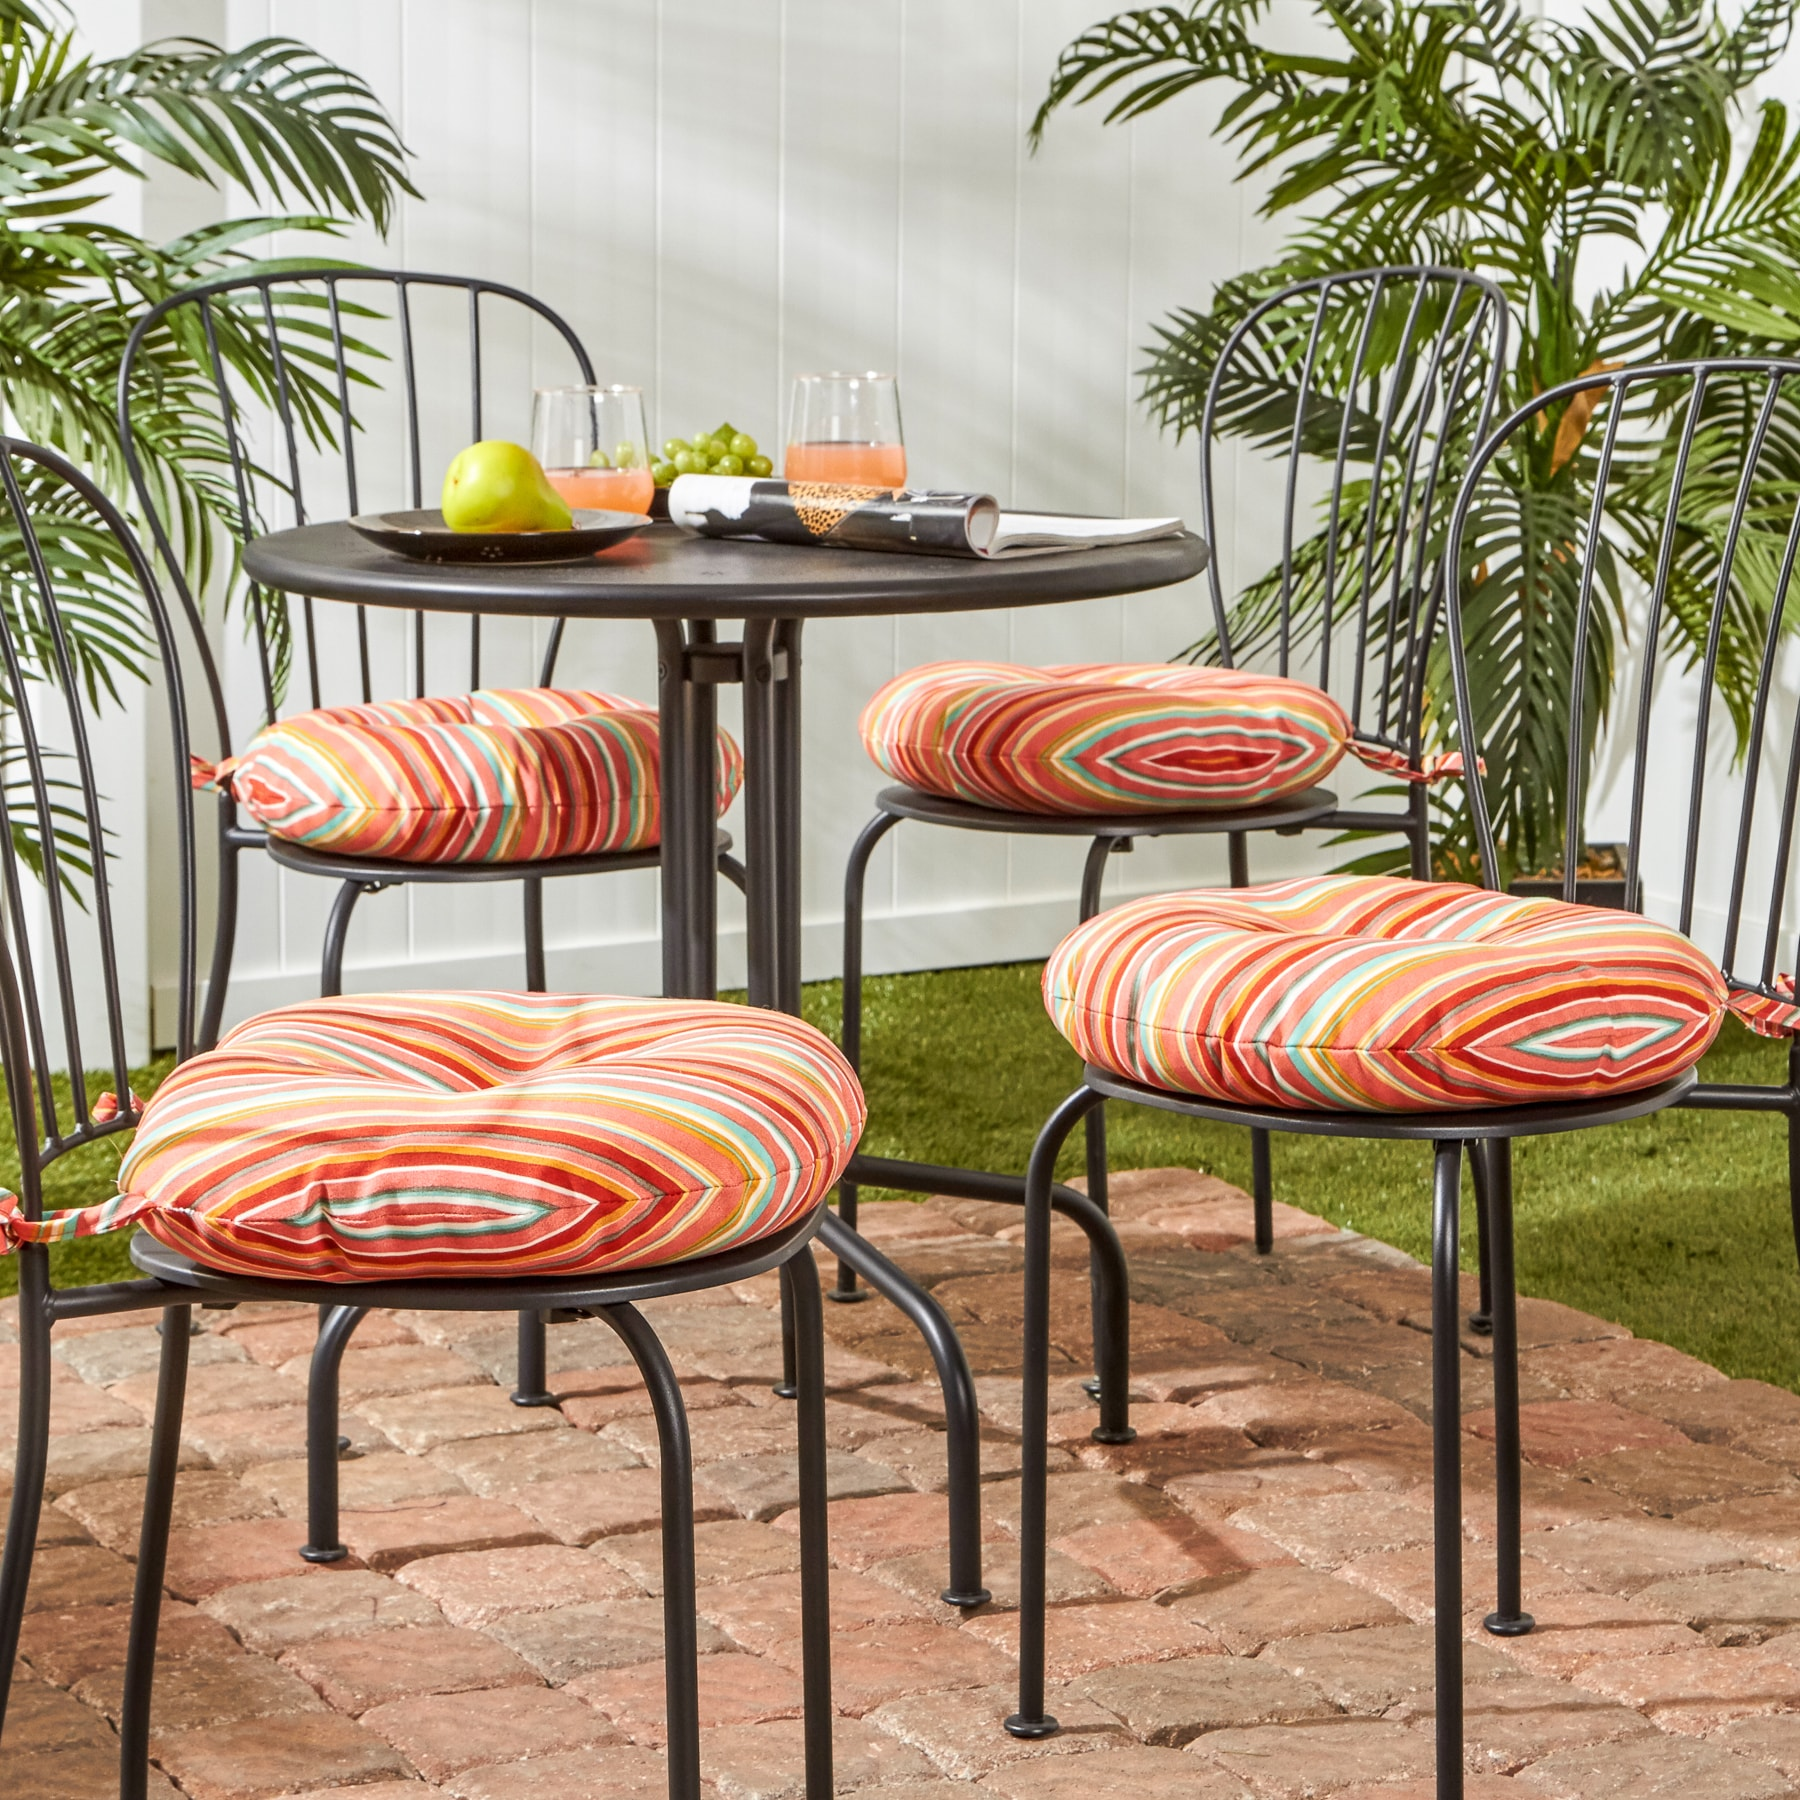 15 Inch Round Outdoor Bistro Chair Cushions Round Designs